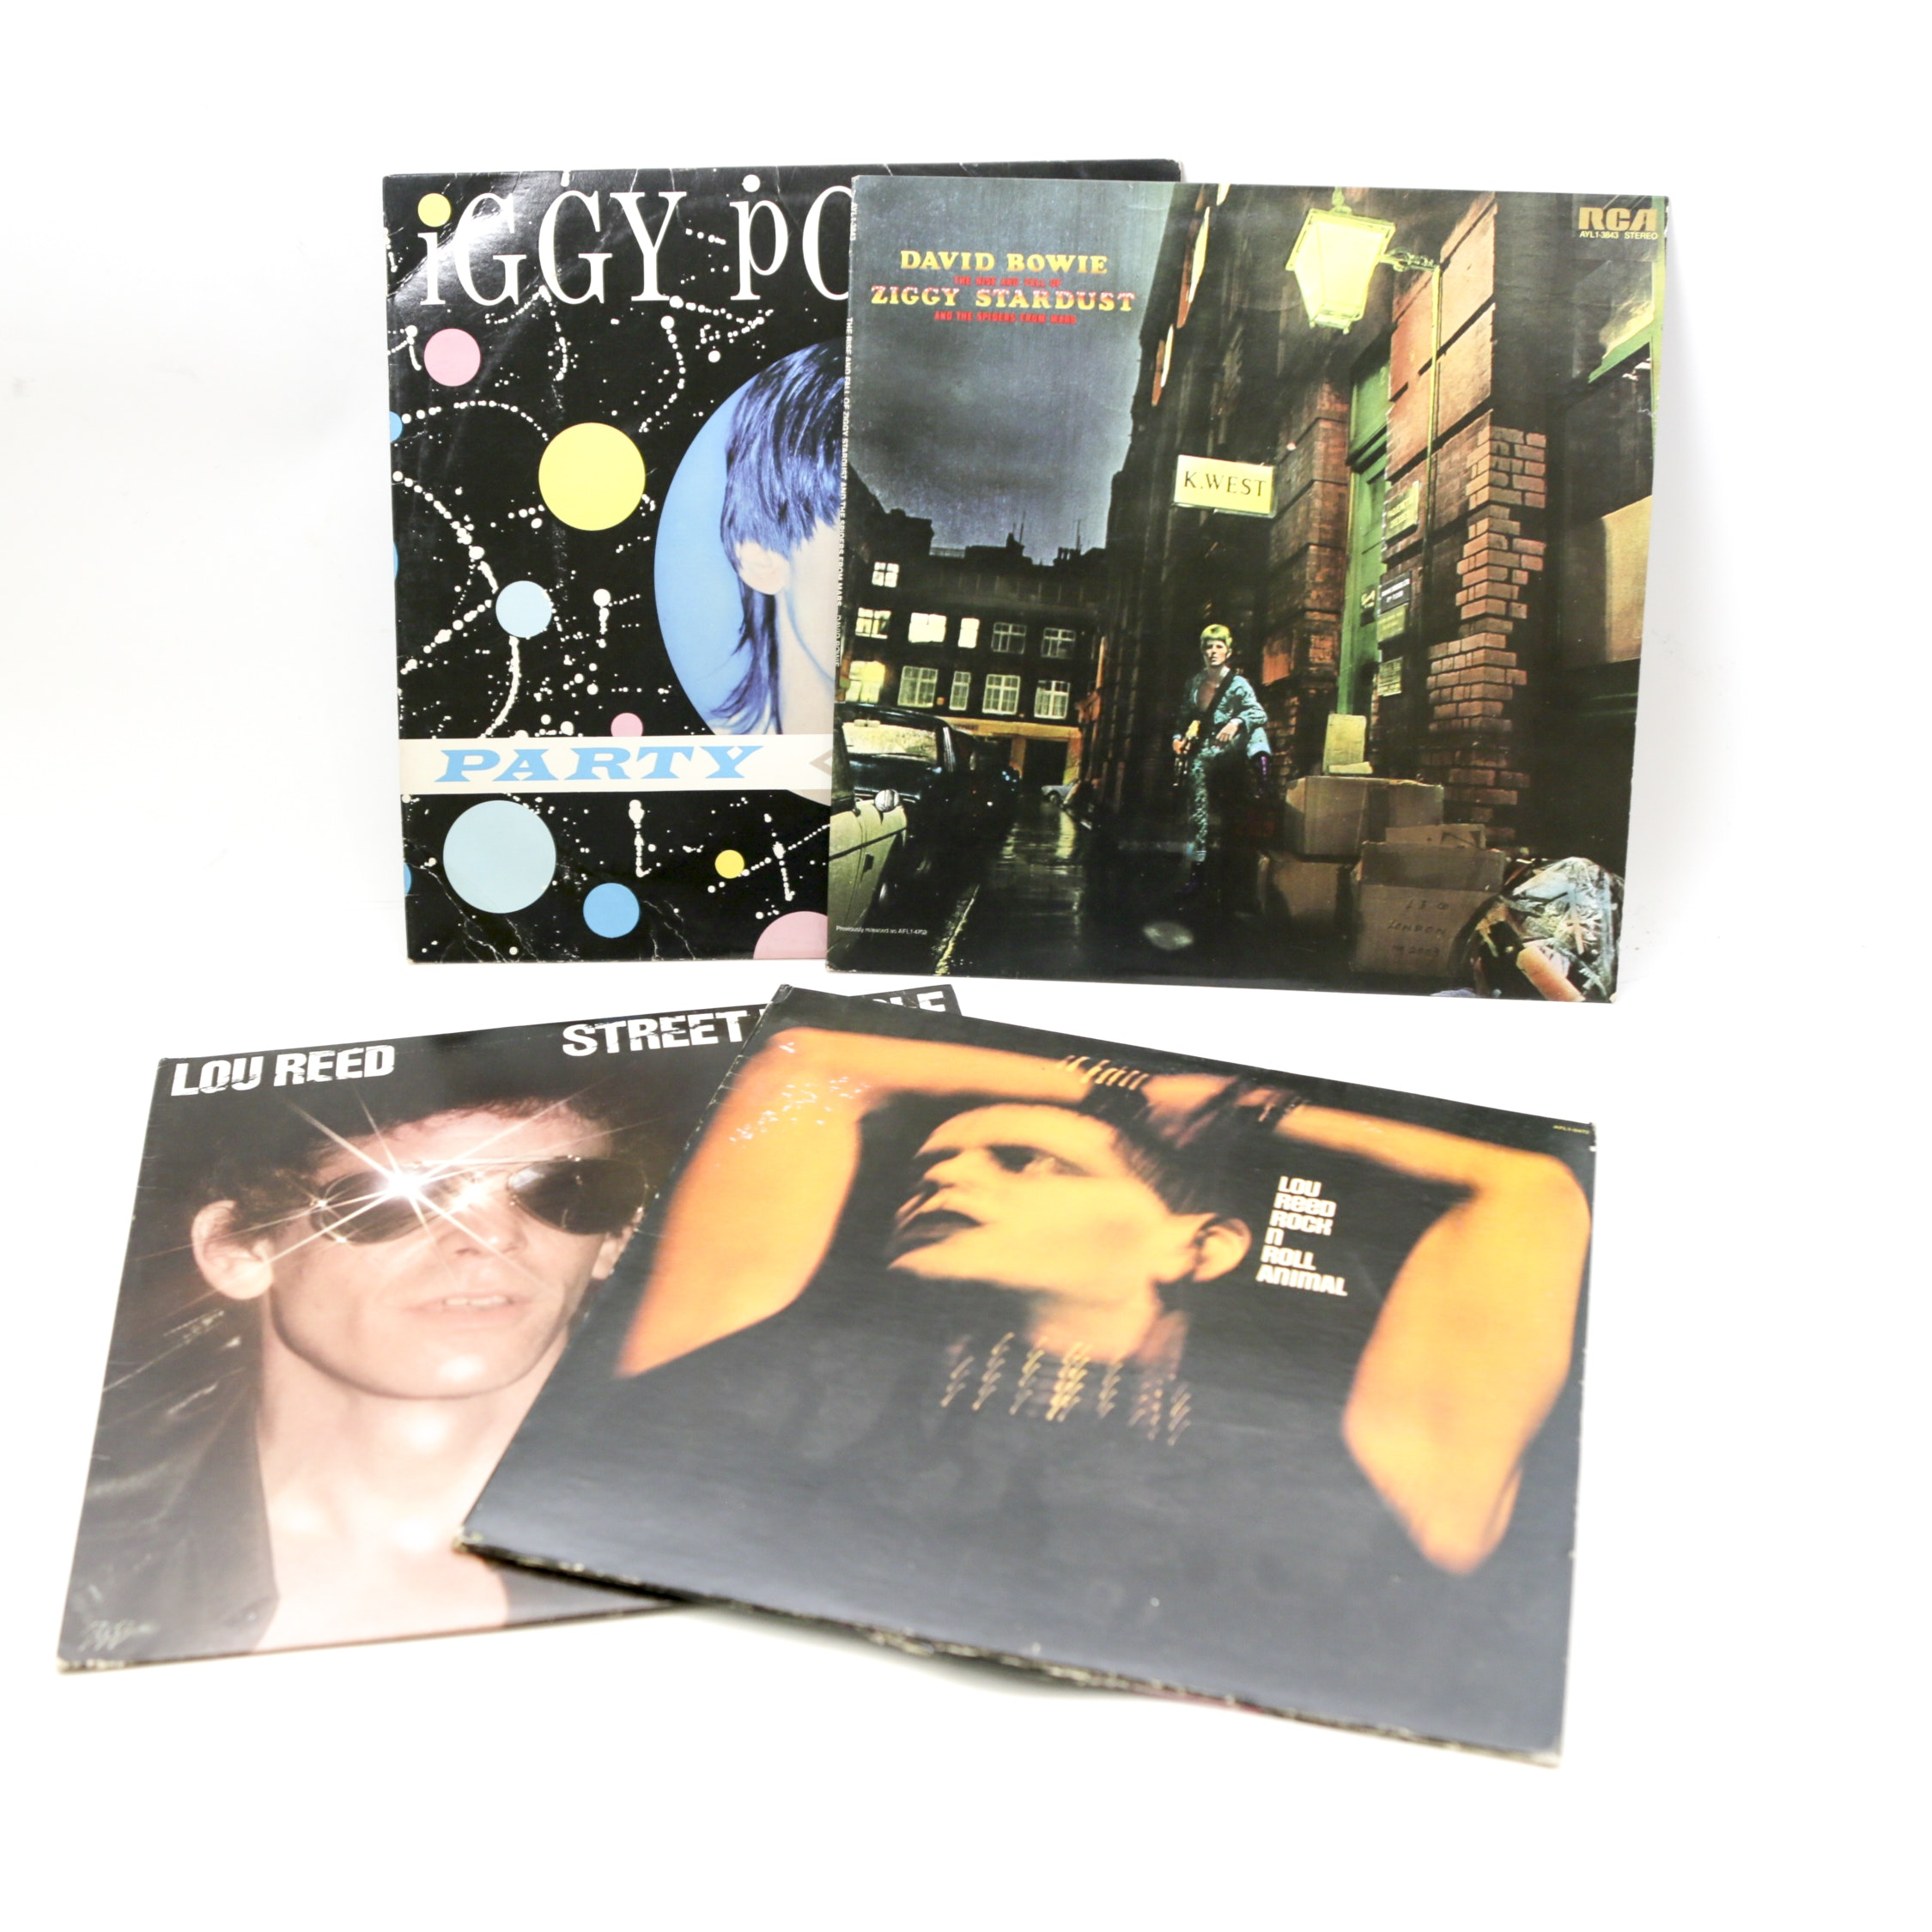 Lou Reed, Iggy Pop and David Bowie LP Records